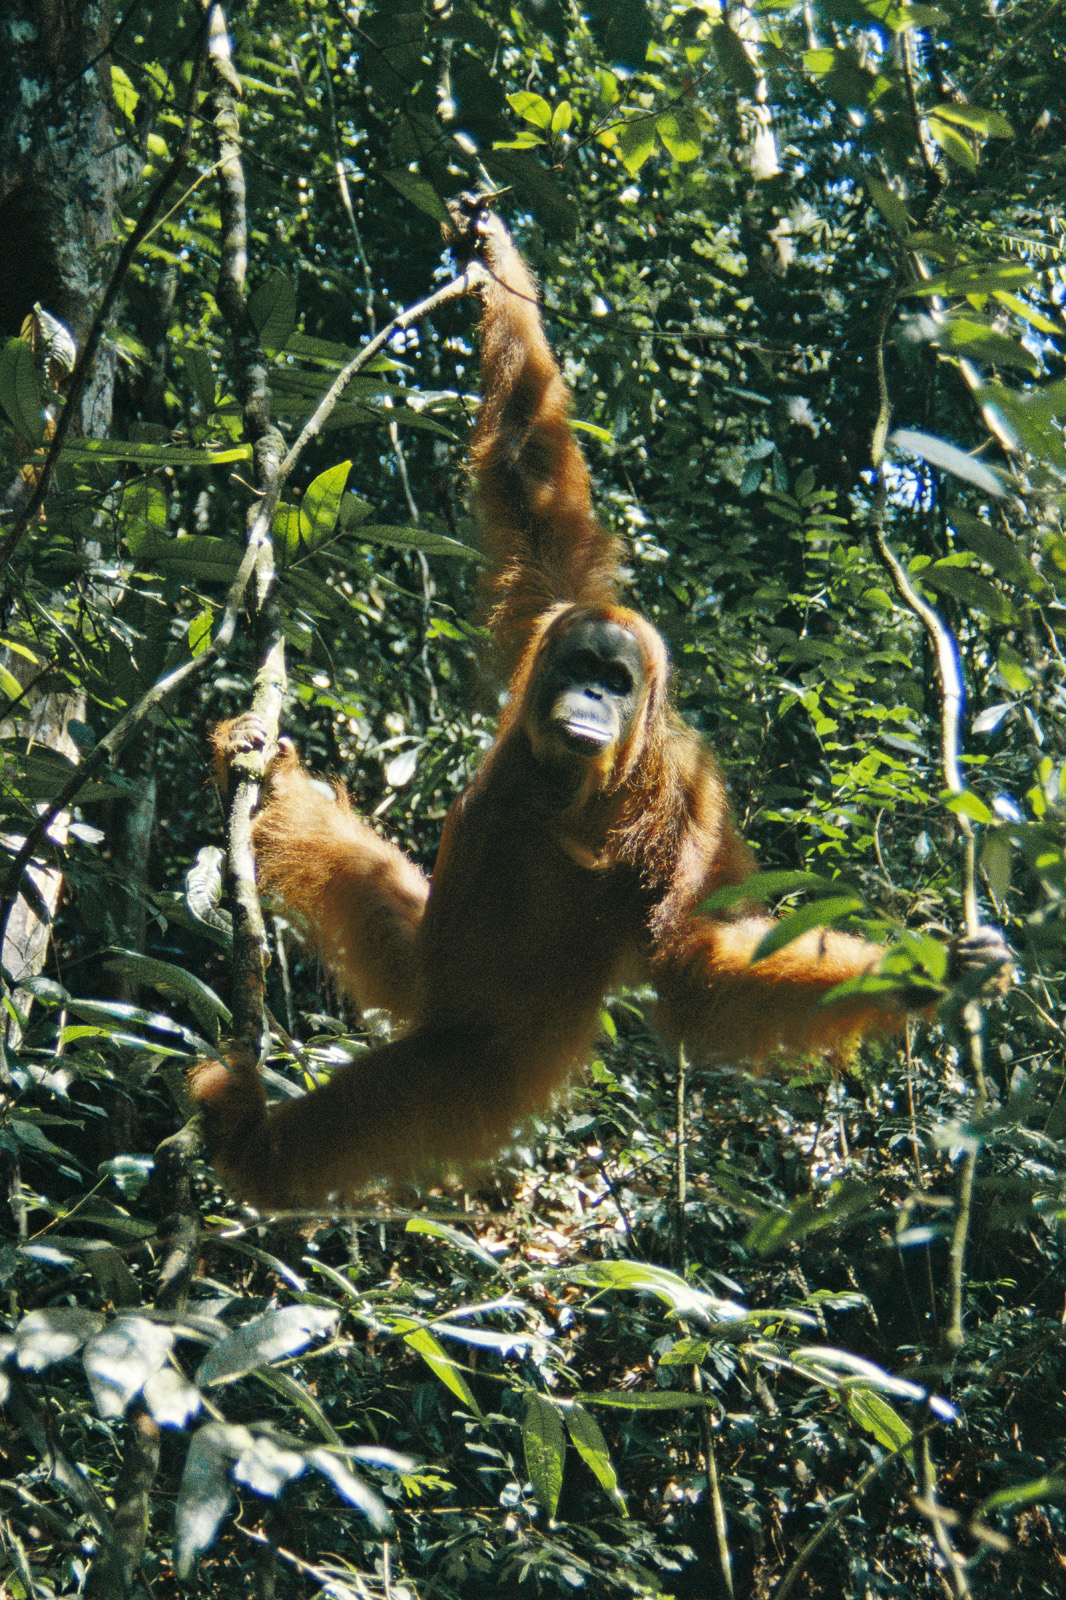 Photo of orangutan (Pongo abelii) from Sumatran forest by Dr. Michelle Merrill (some rights reserved: CC BY-NC-SA 4.0)